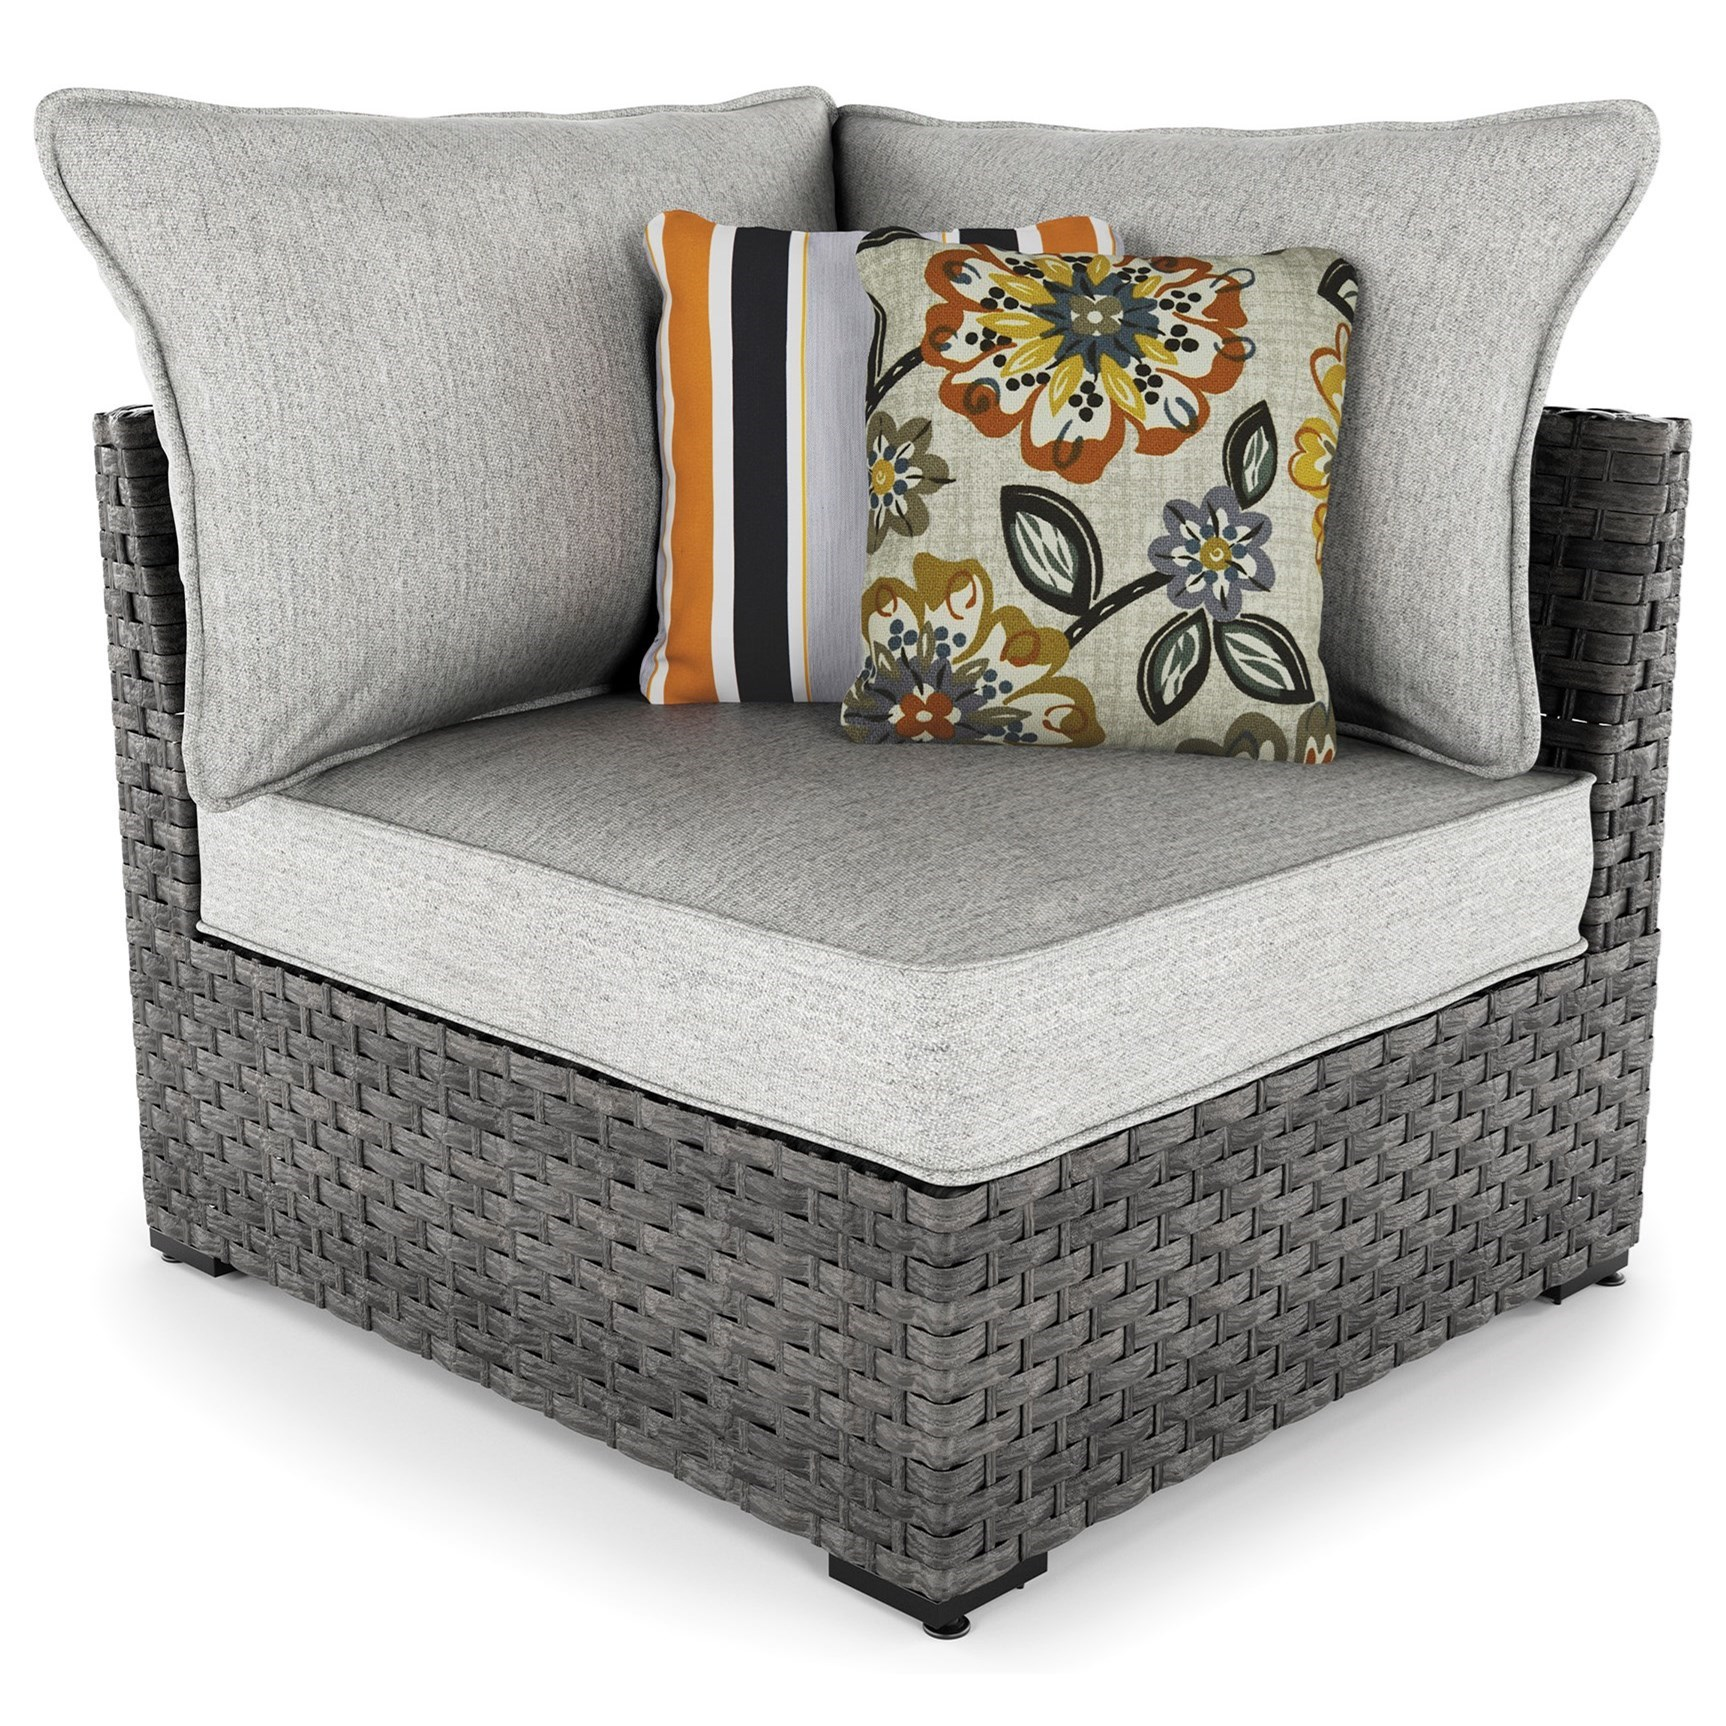 Signature Design by Ashley Spring Dew Set of 2 Corner Chairs with Cushion - Item Number: P453-877